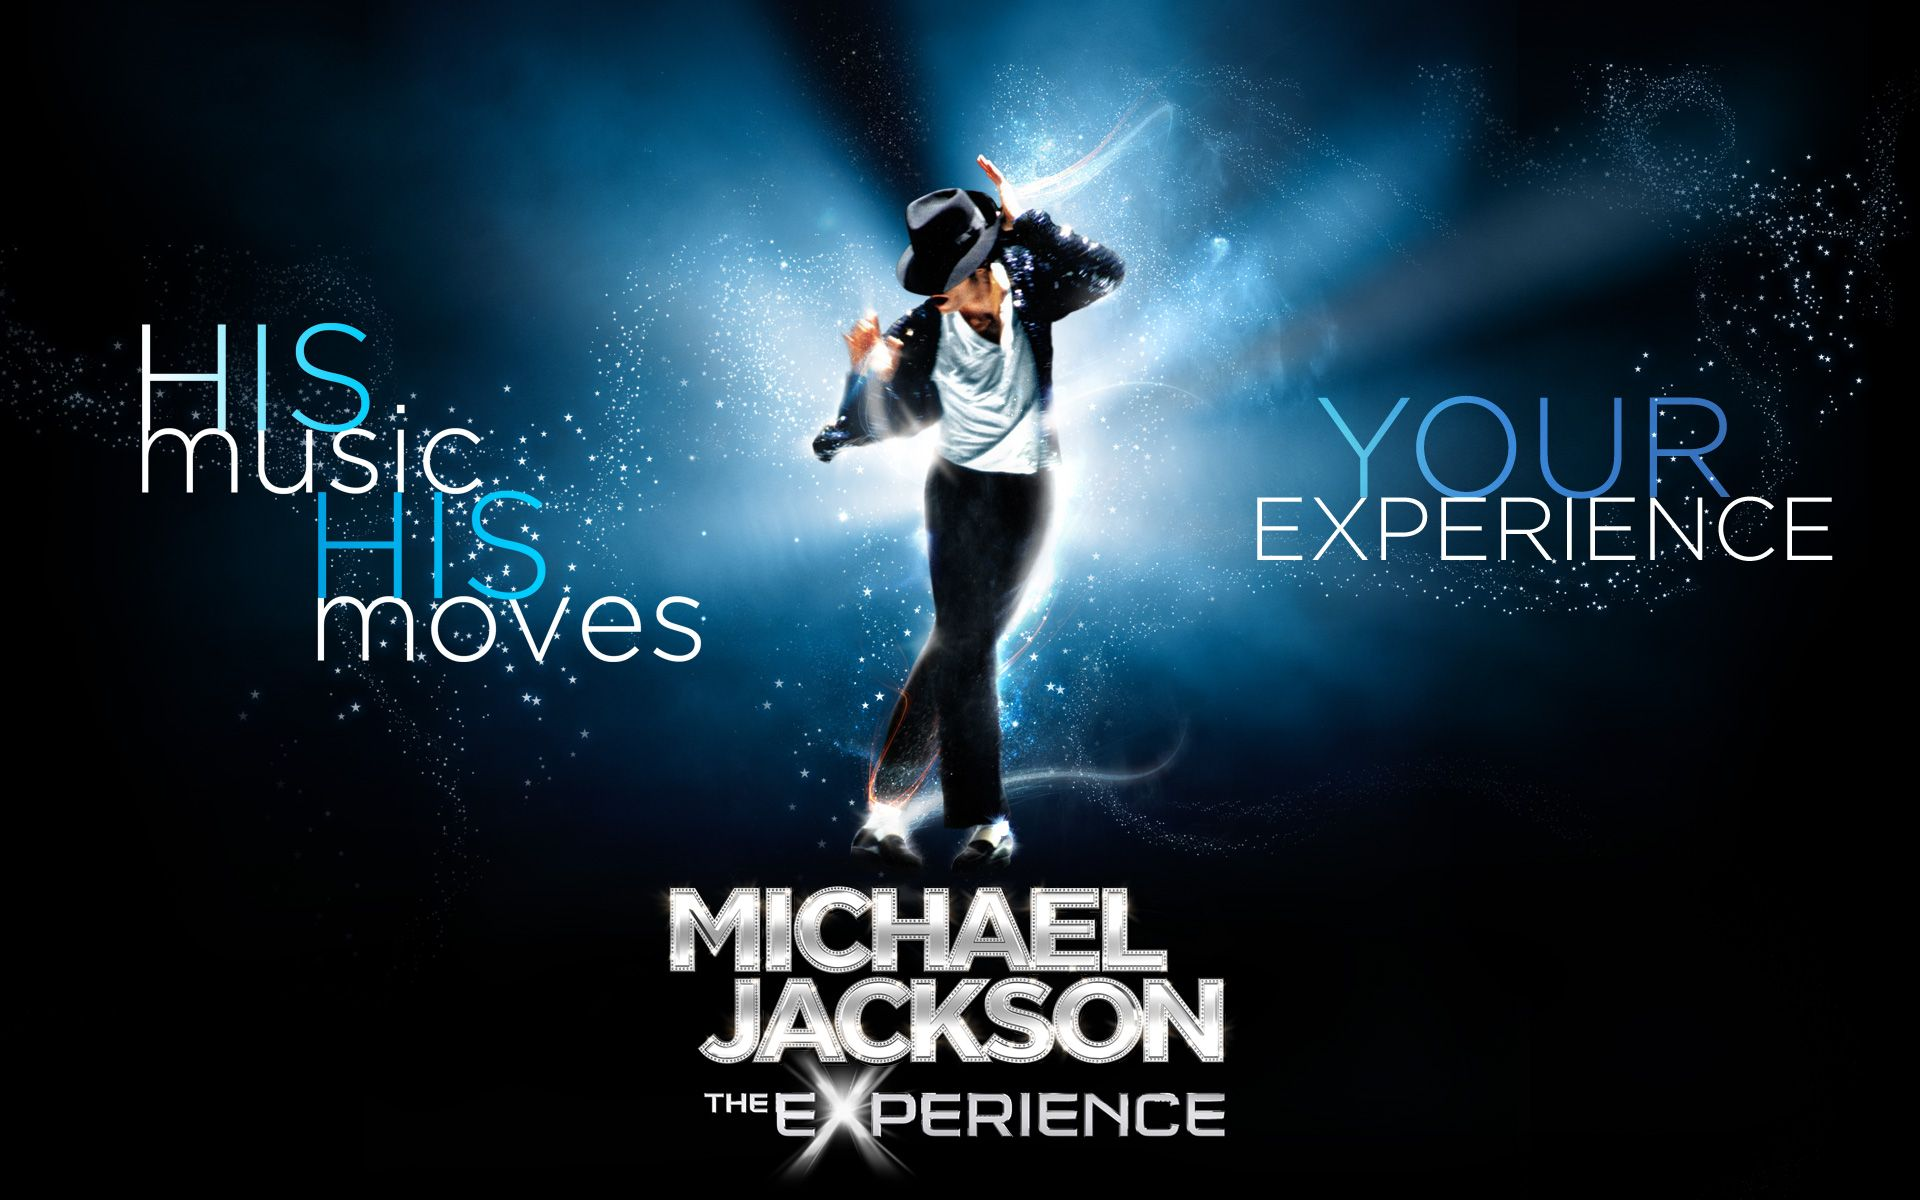 19 Awesome michael jackson dancing wallpaper iphone images